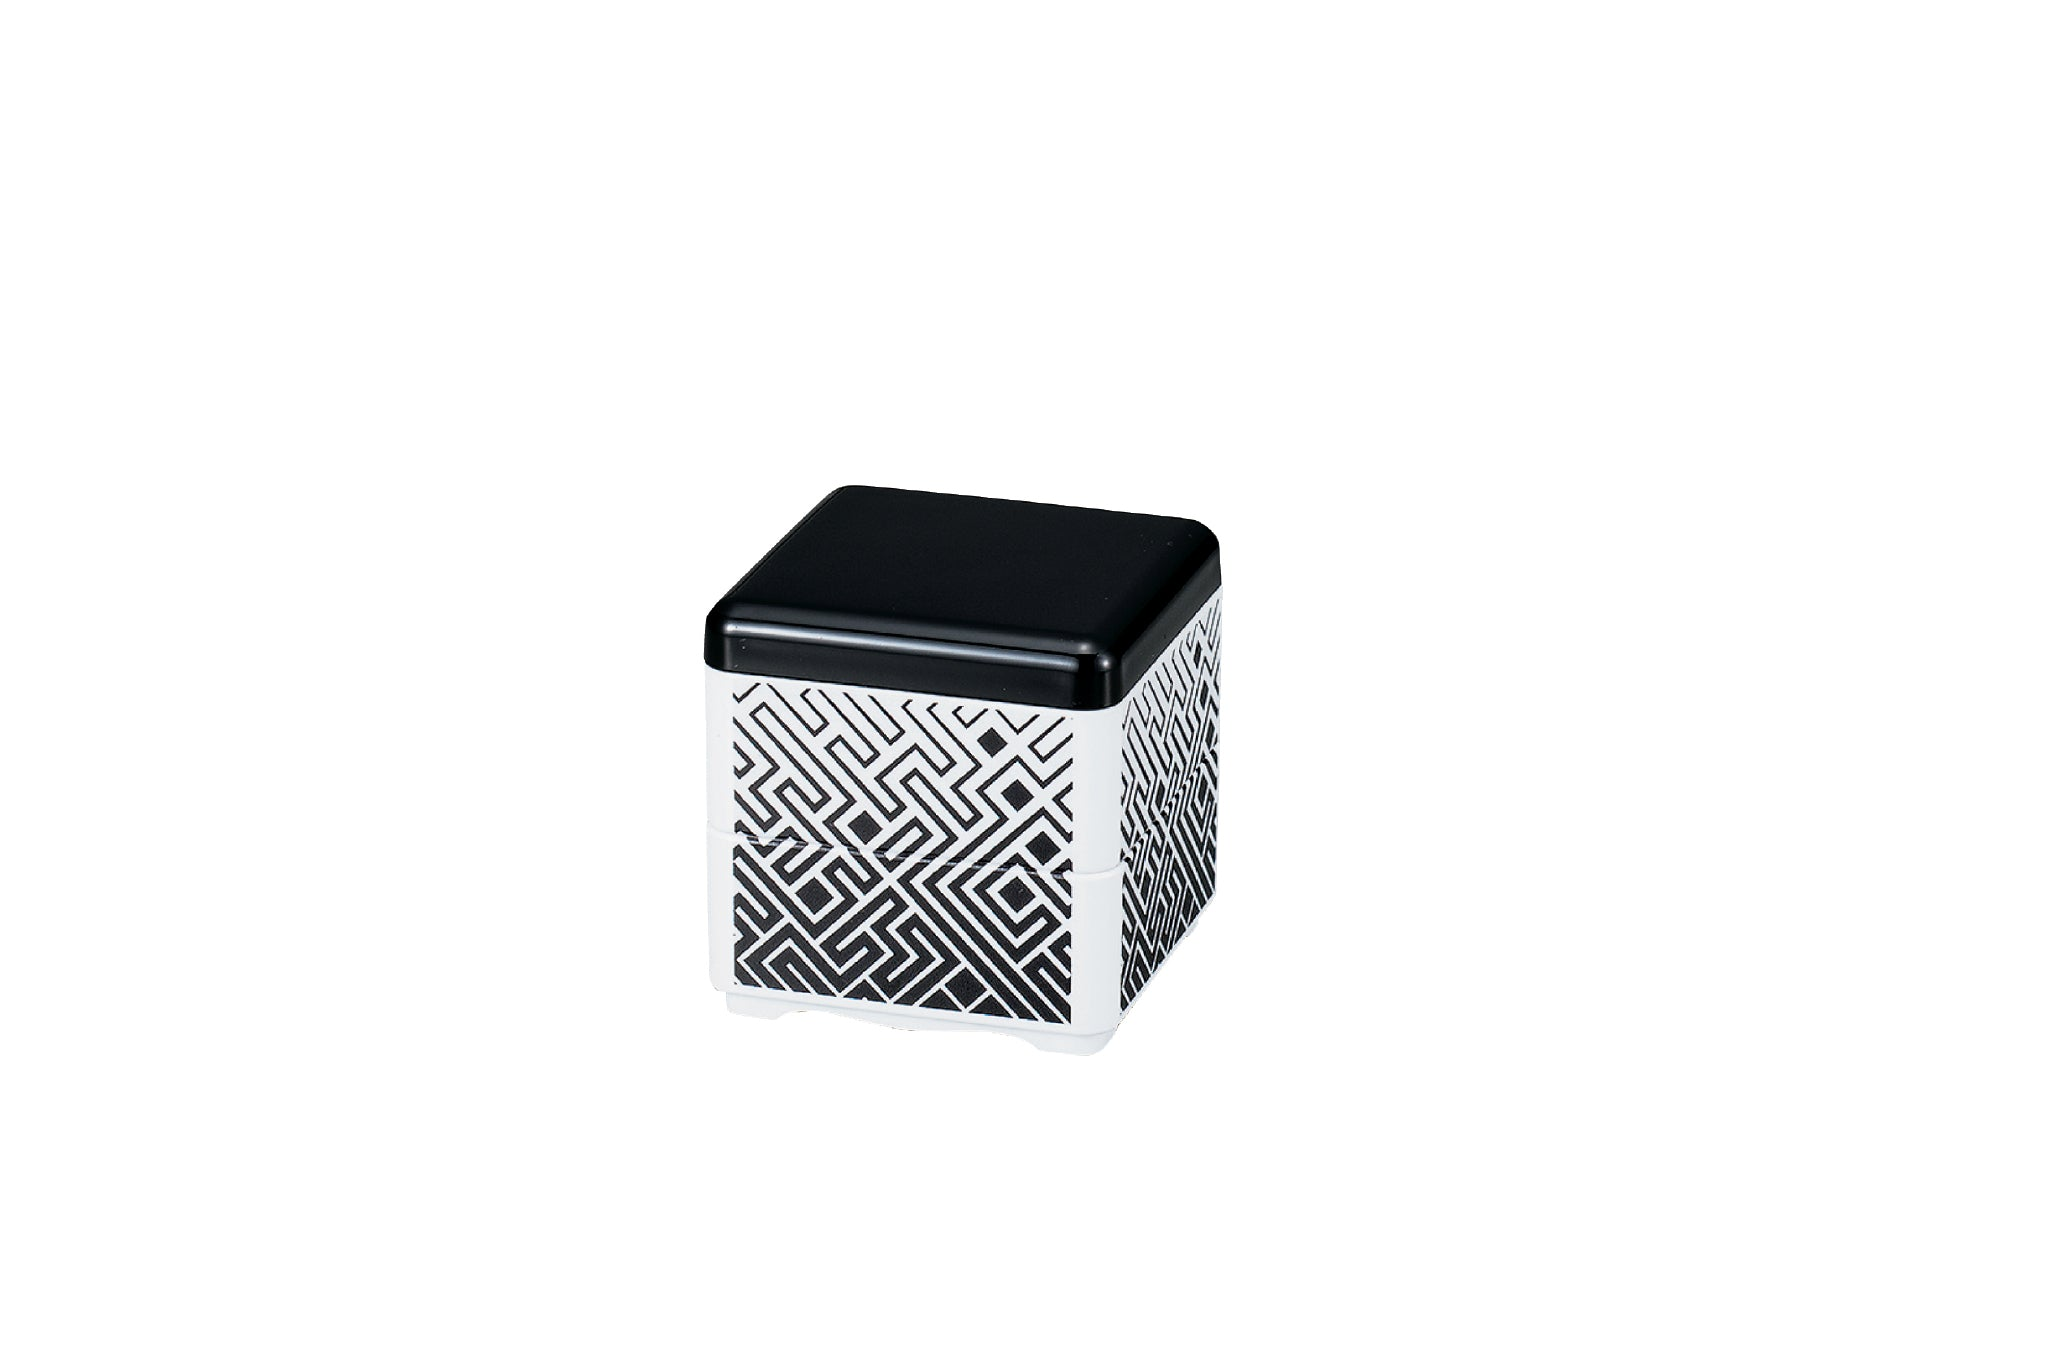 Mini Bento Box | Maze Black by Hakoya - Bento&co Japanese Bento Lunch Boxes and Kitchenware Specialists